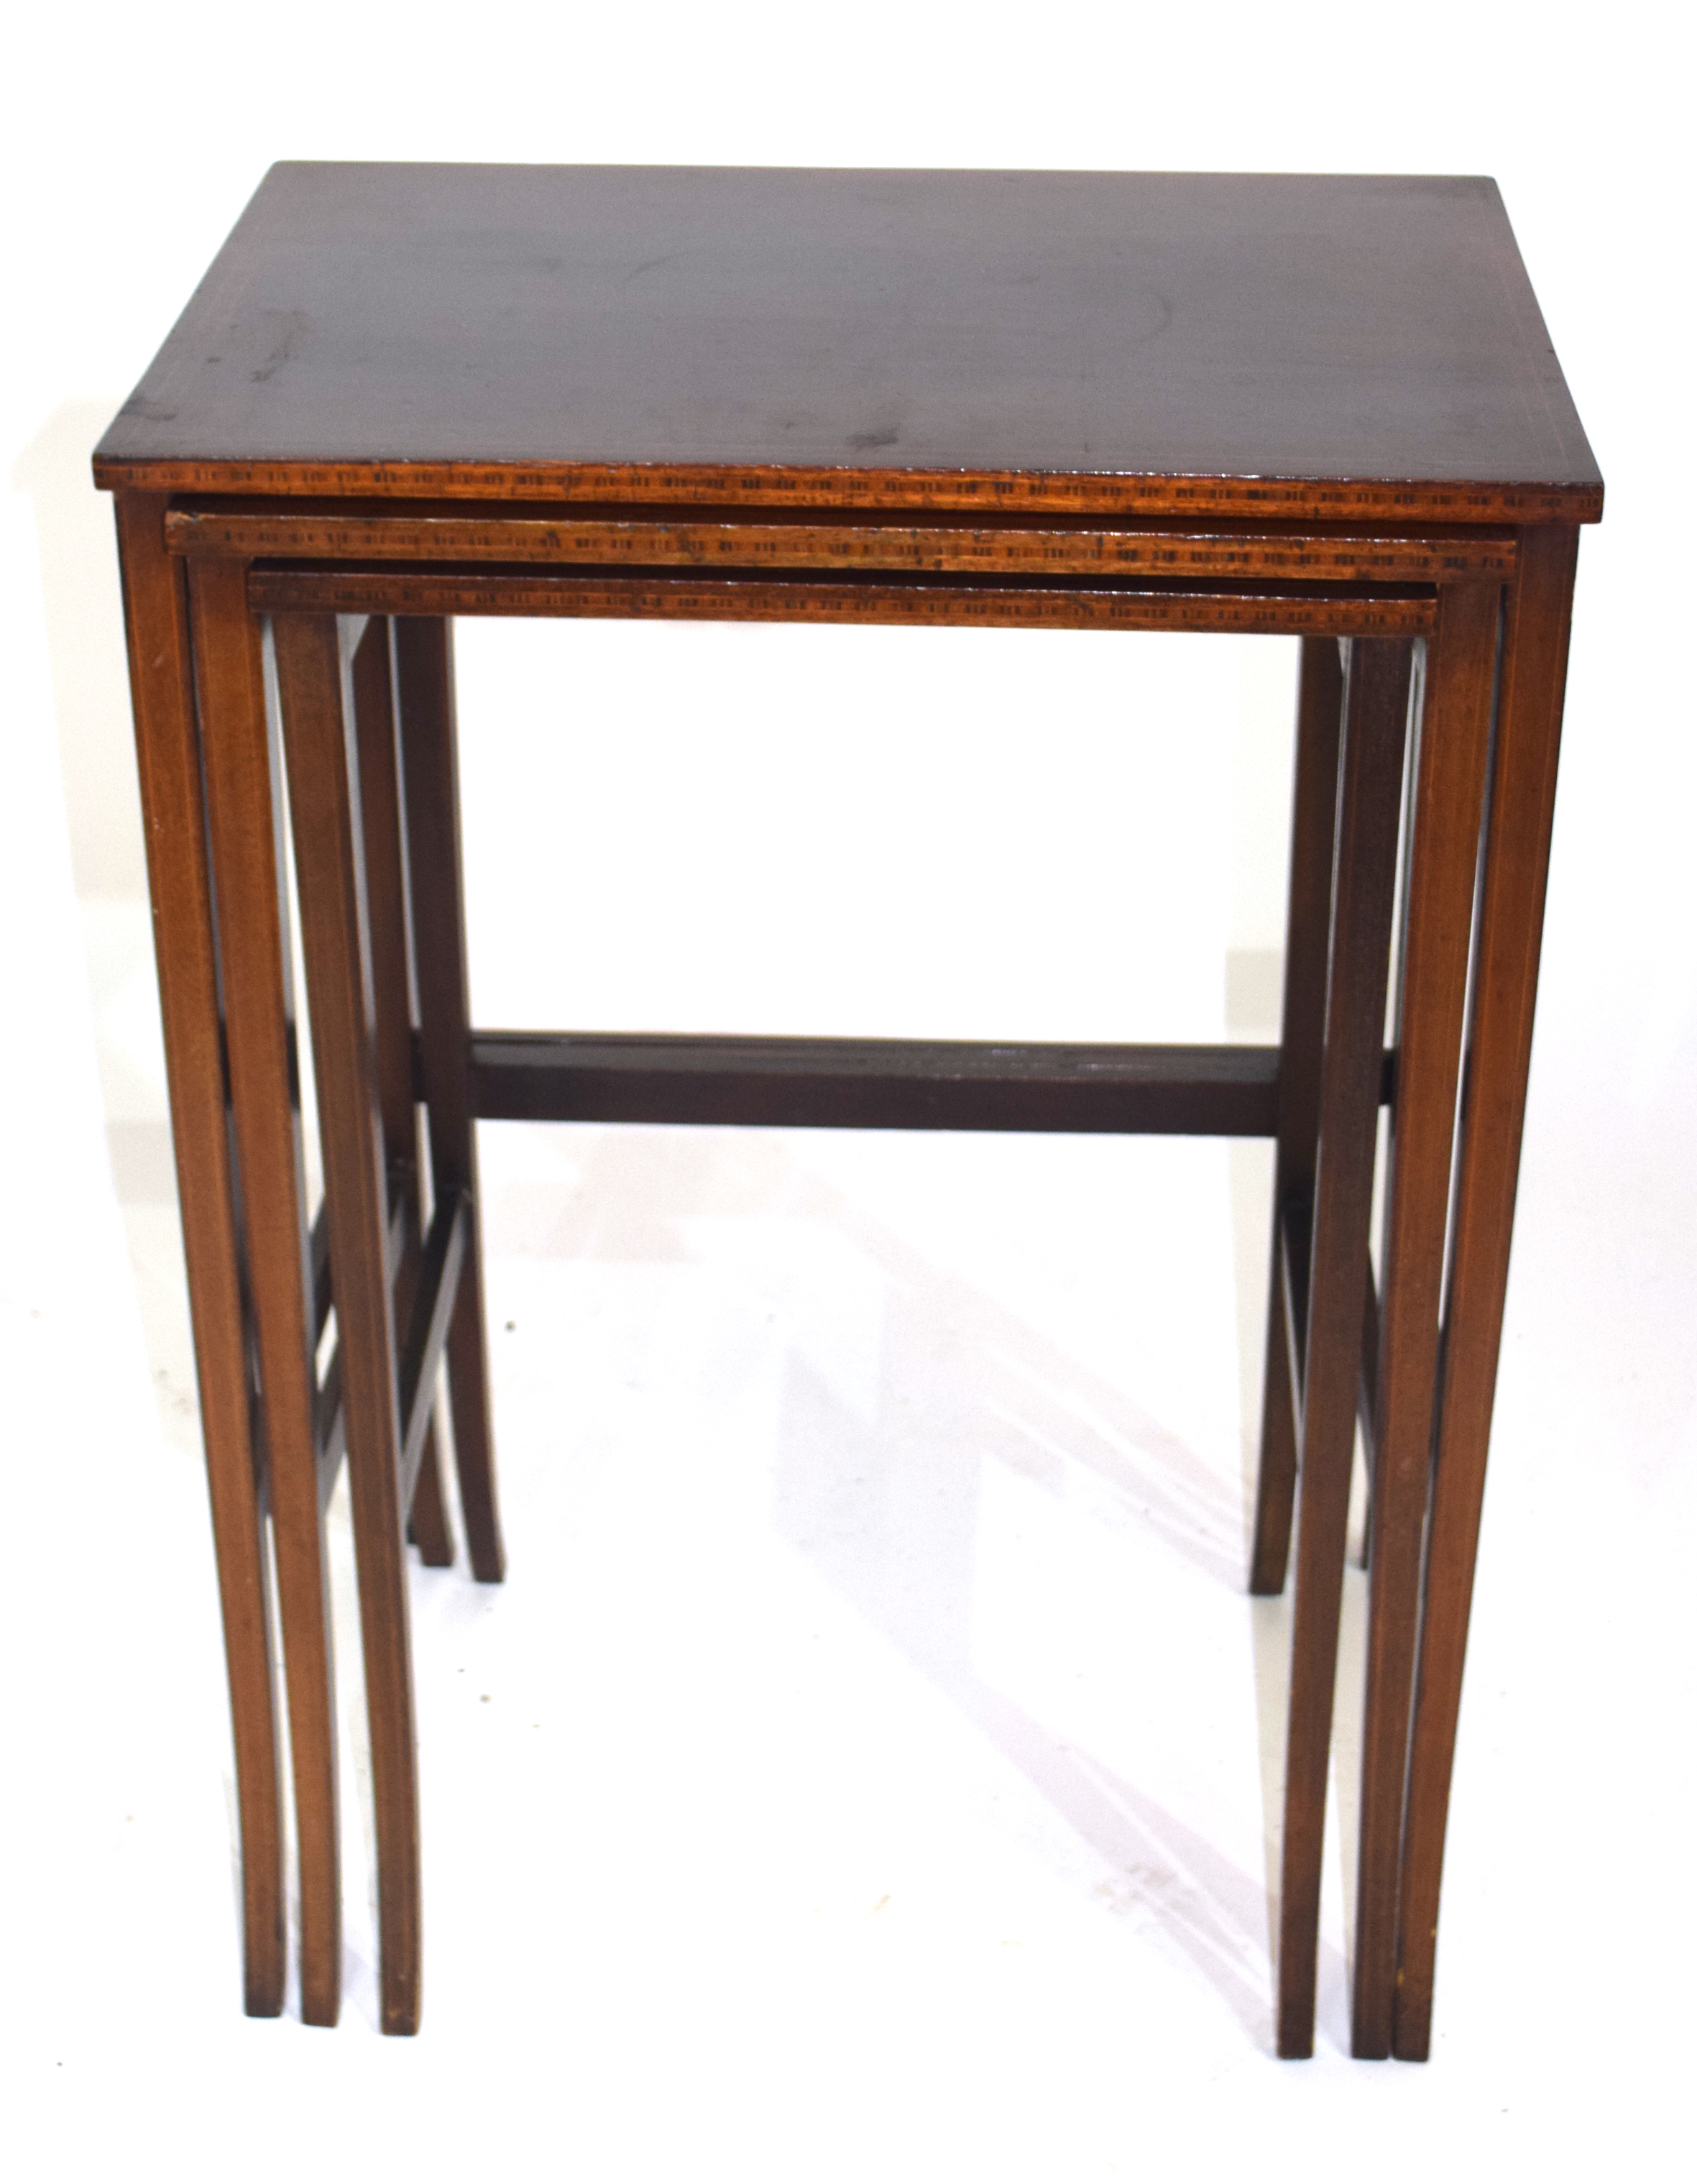 Nest of three Edwardian mahogany and inlaid occasional tables on slender legs, largest 49.5cm wide - Image 2 of 5